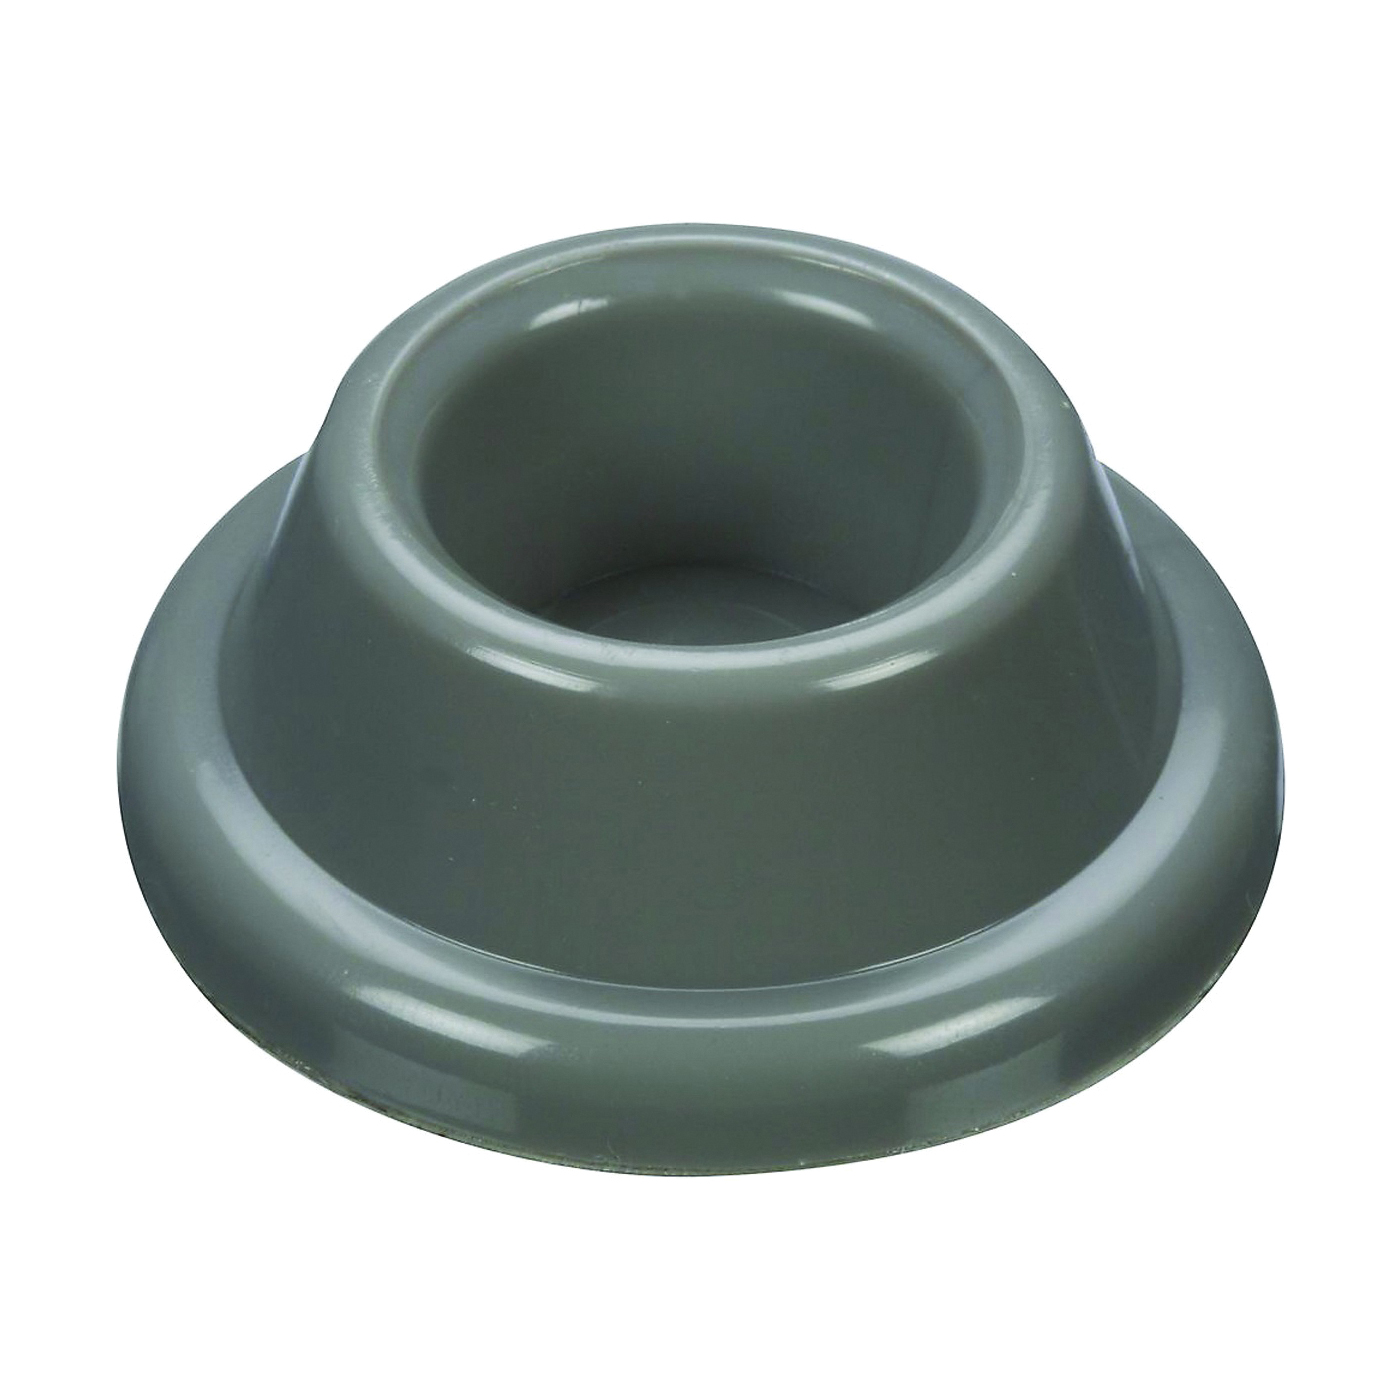 Picture of National Hardware N243-808 Door Stop, 1.9 in Dia Base, 0.72 in Projection, Plastic, Gray